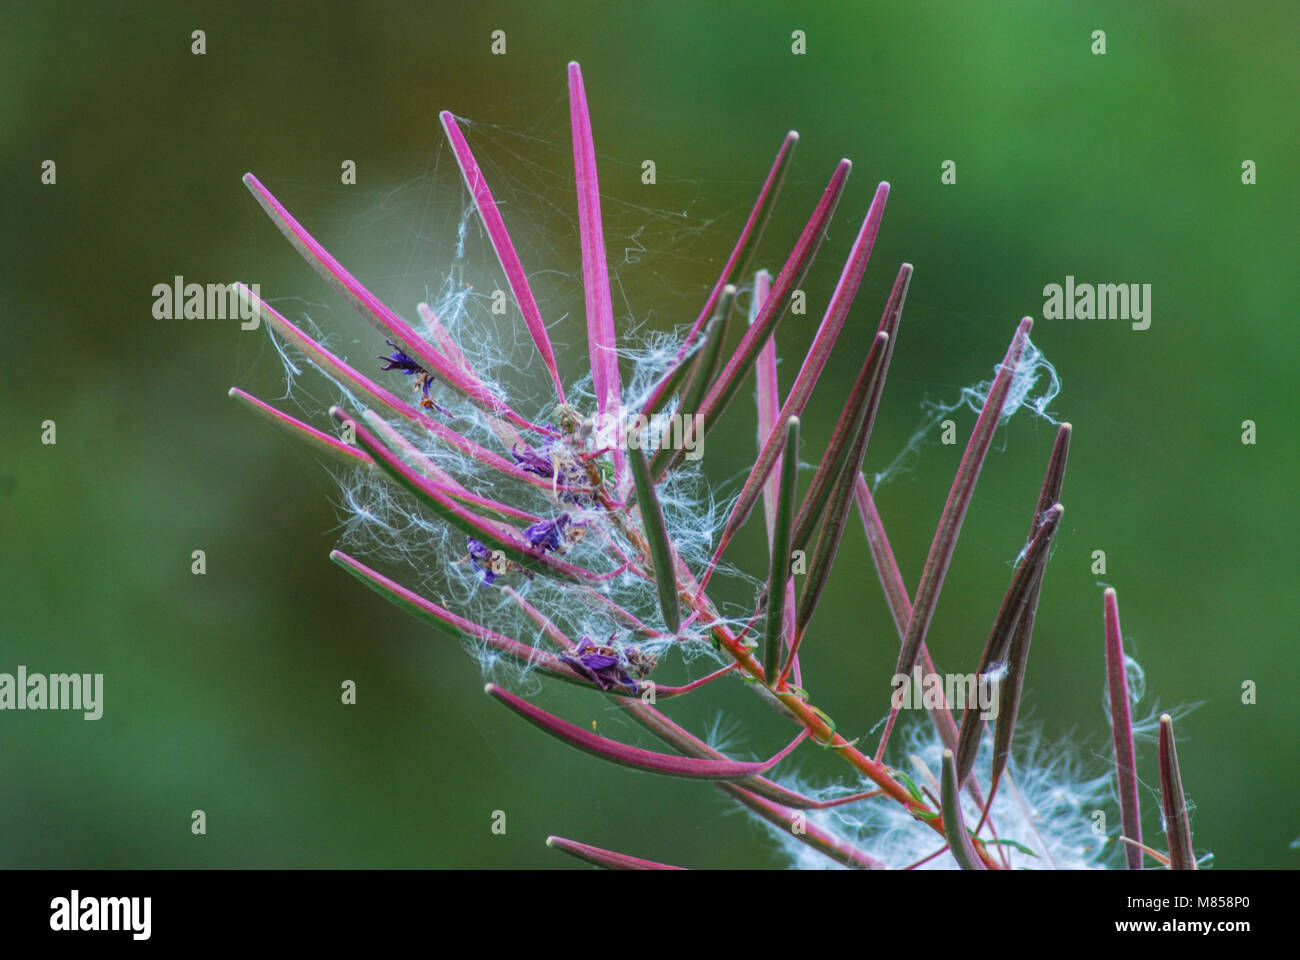 Red spiky plant that has captured dandelion fluff - Stock Image